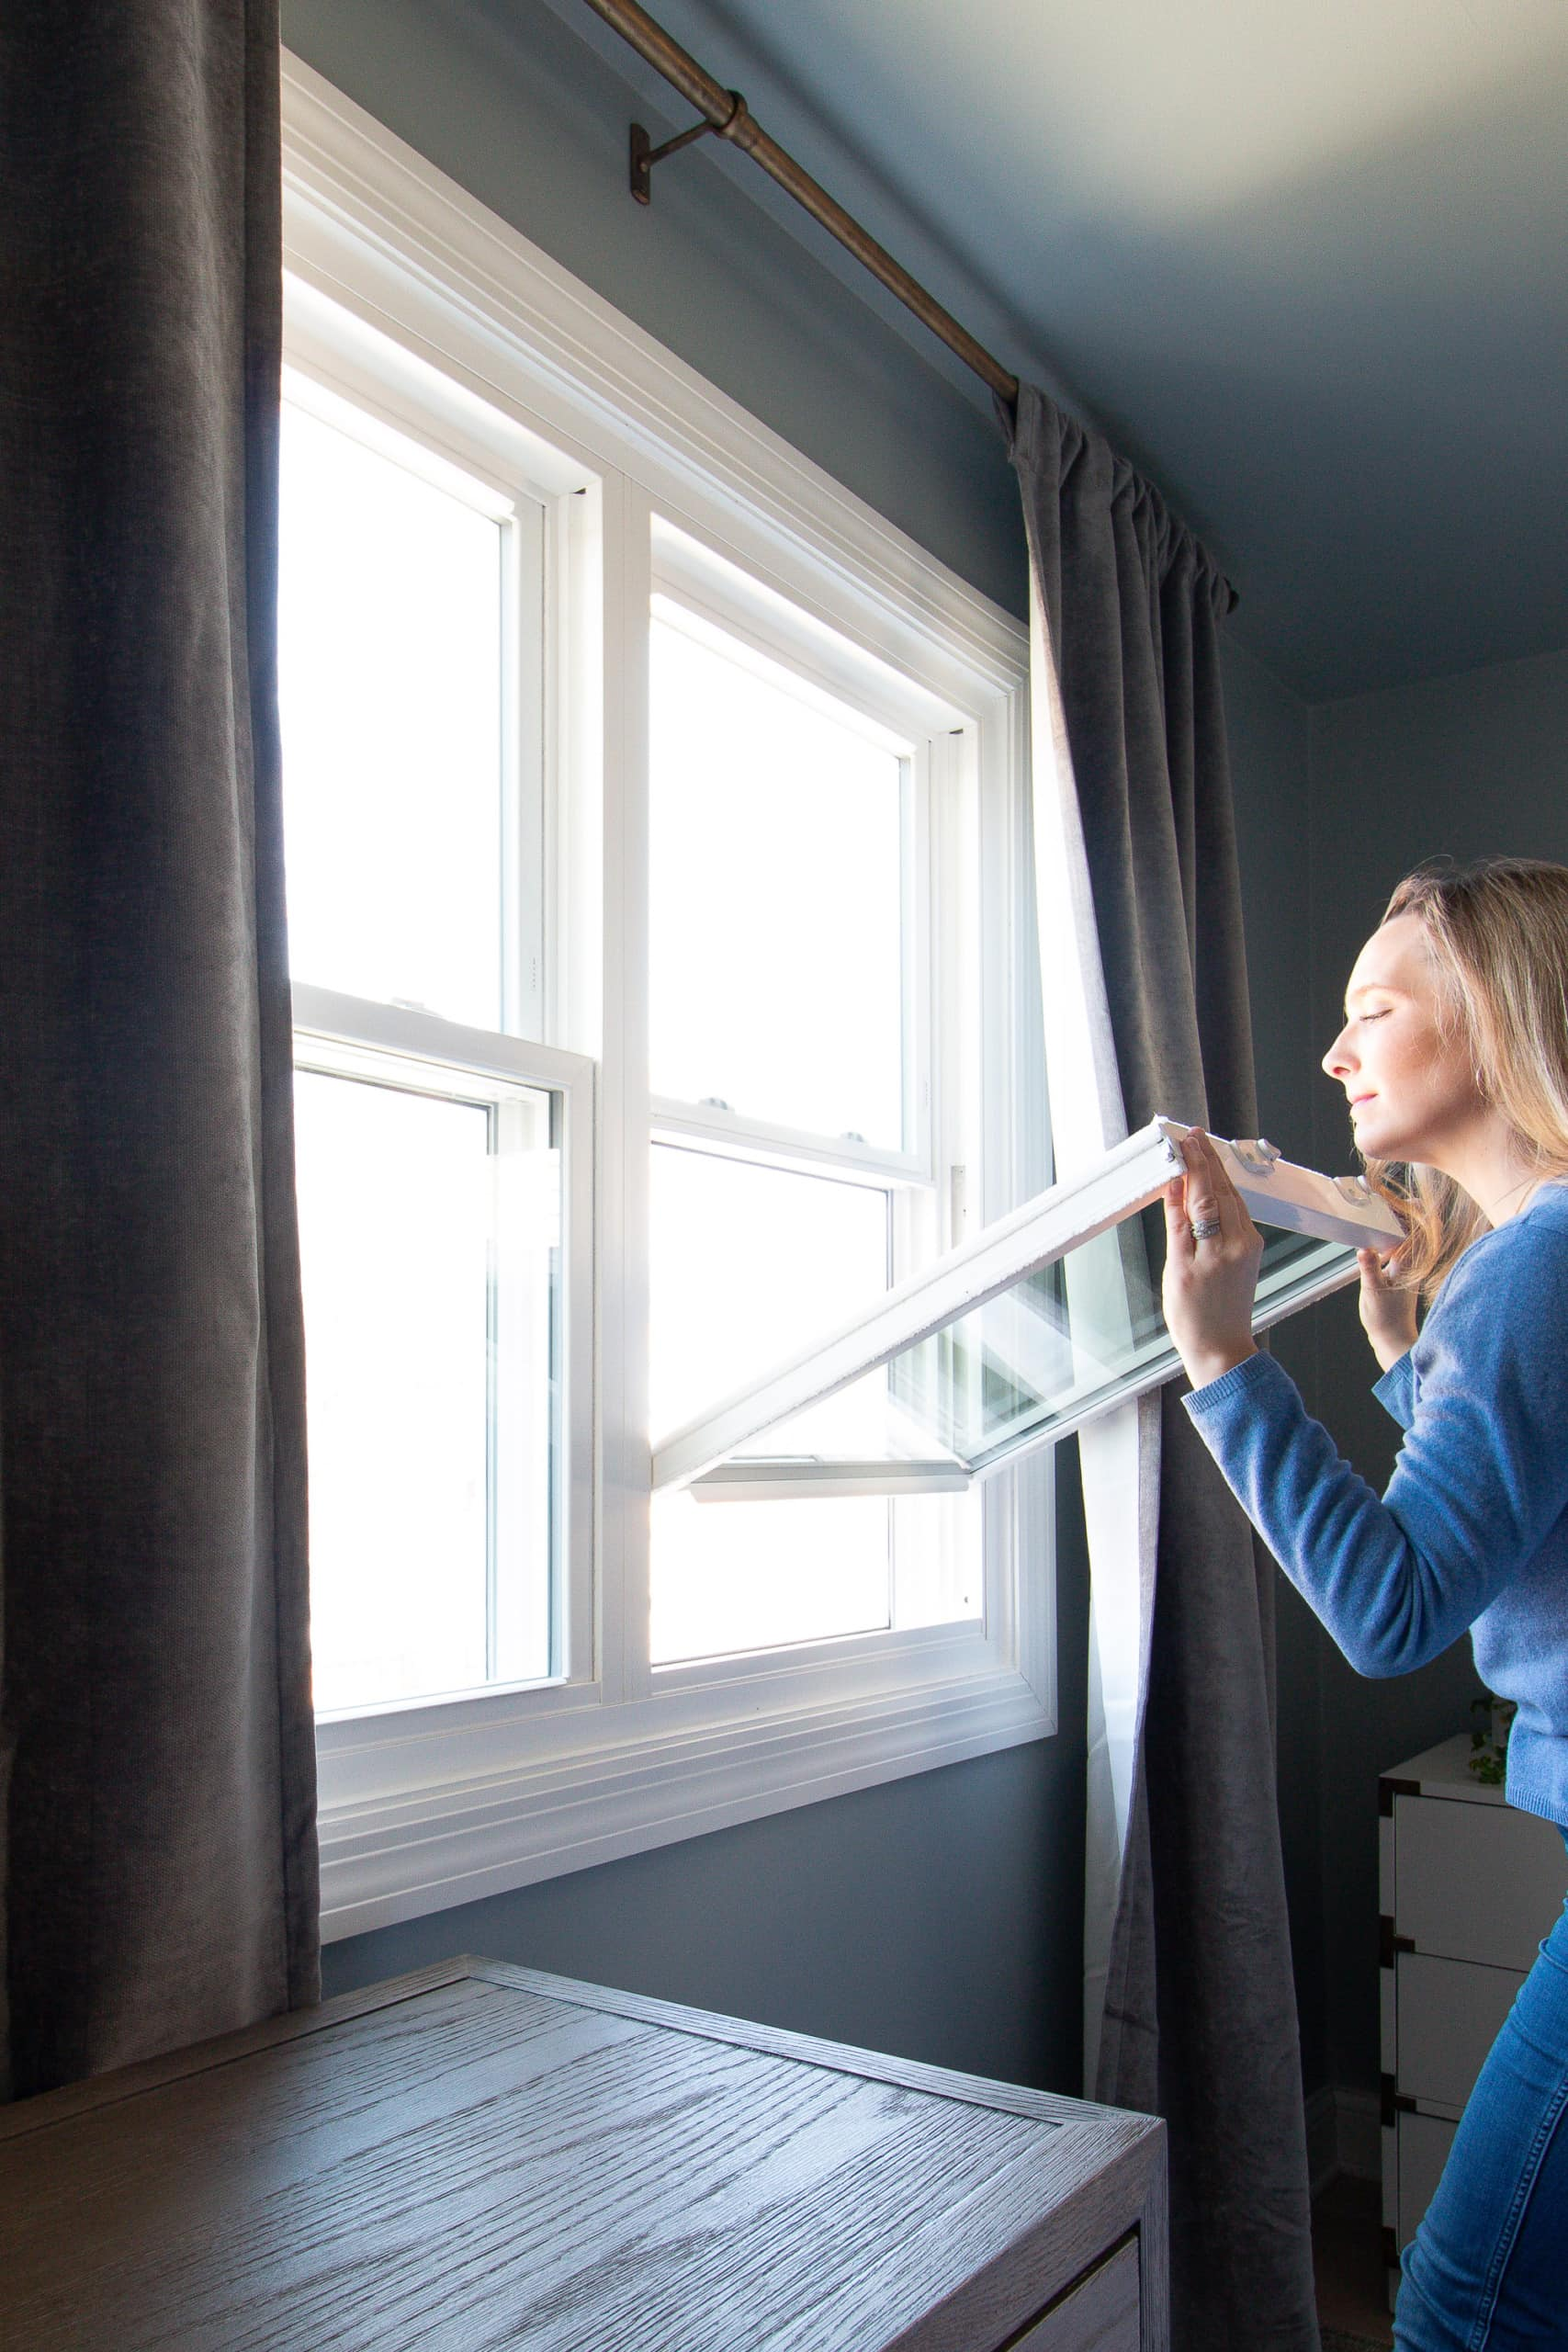 You can tilt out your windows to easily clean them